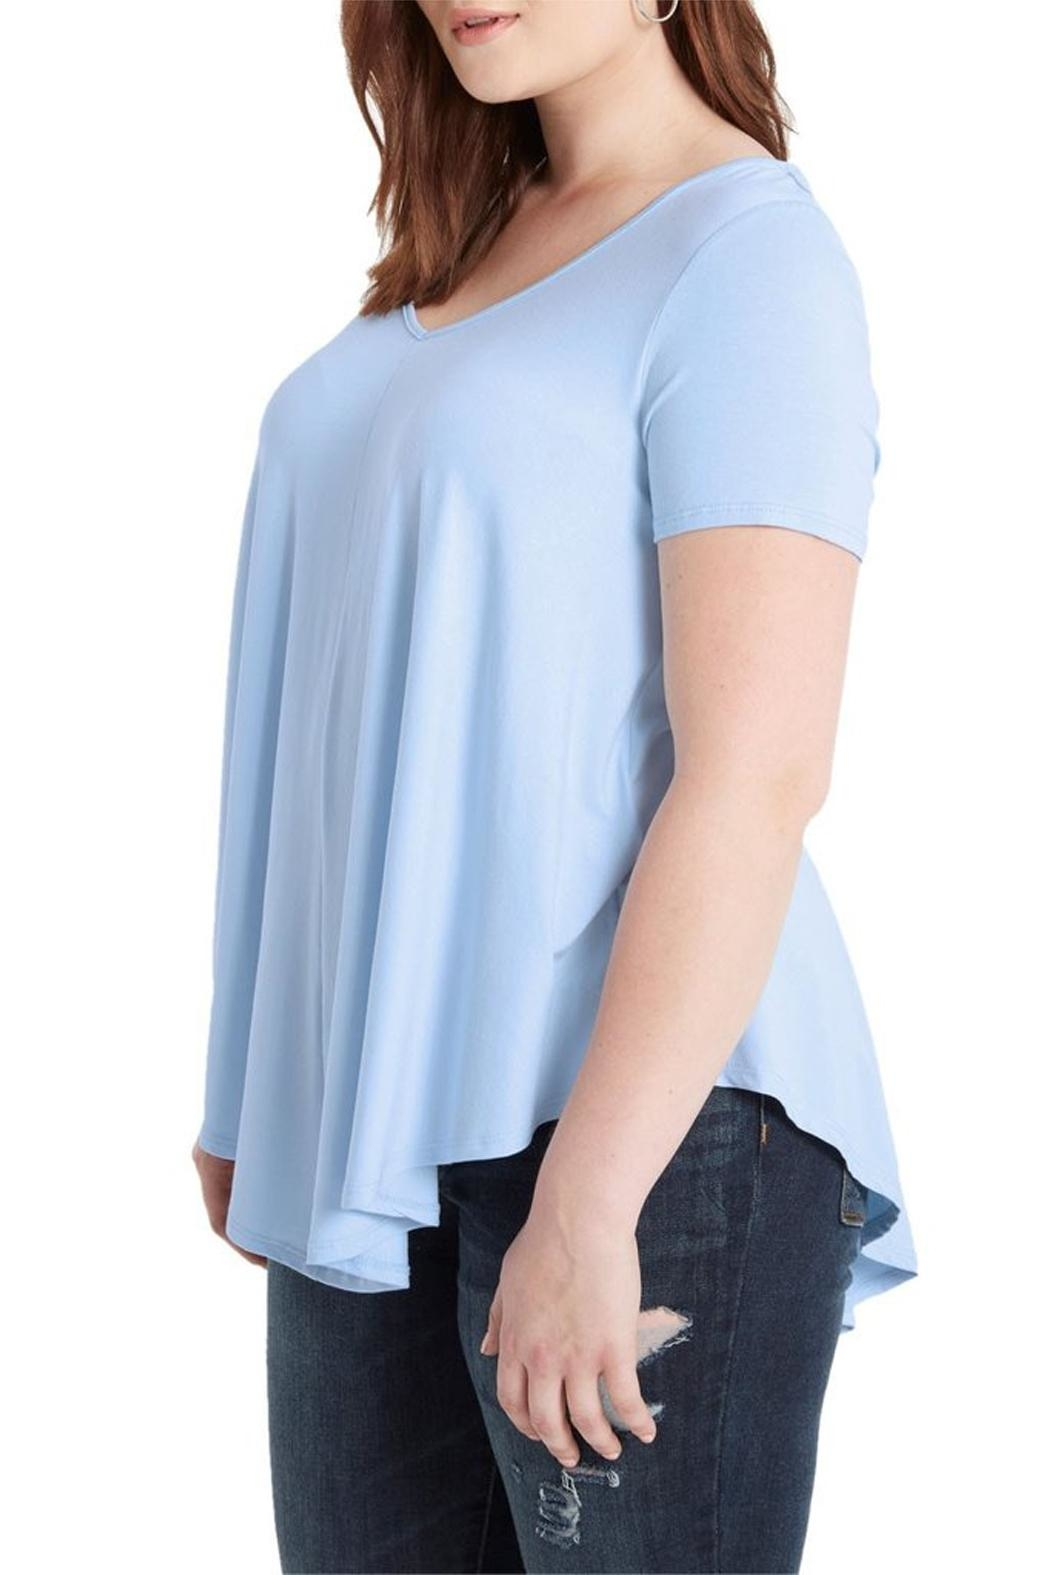 Mai Tai Dusty Blue V Neck - Side Cropped Image